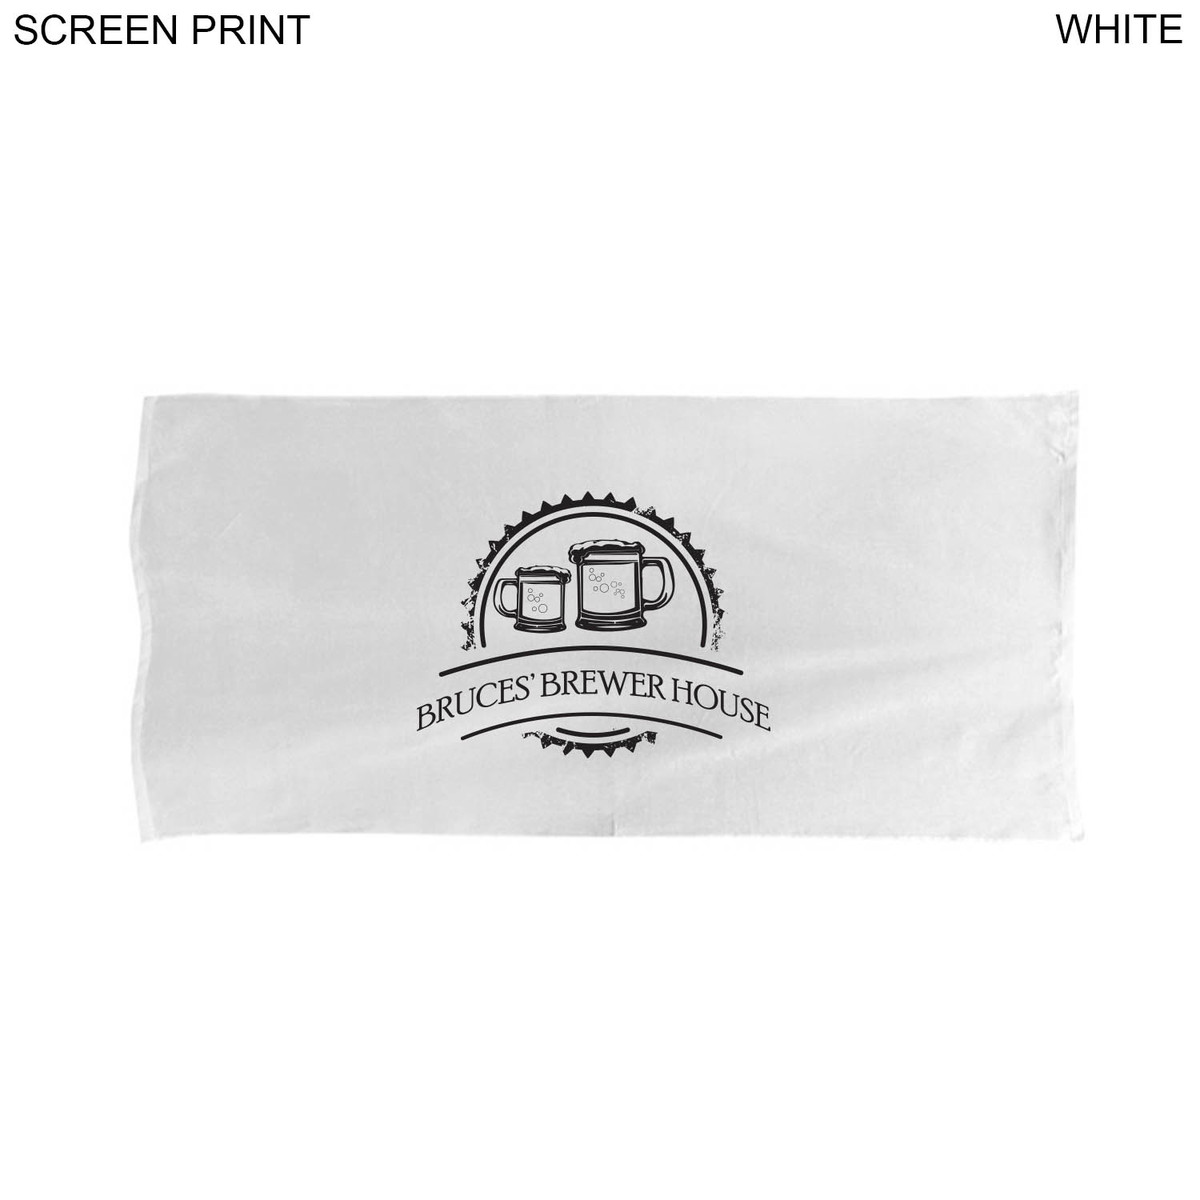 Velour Over Sized White Beach Towel 34x70 Printed or Blank